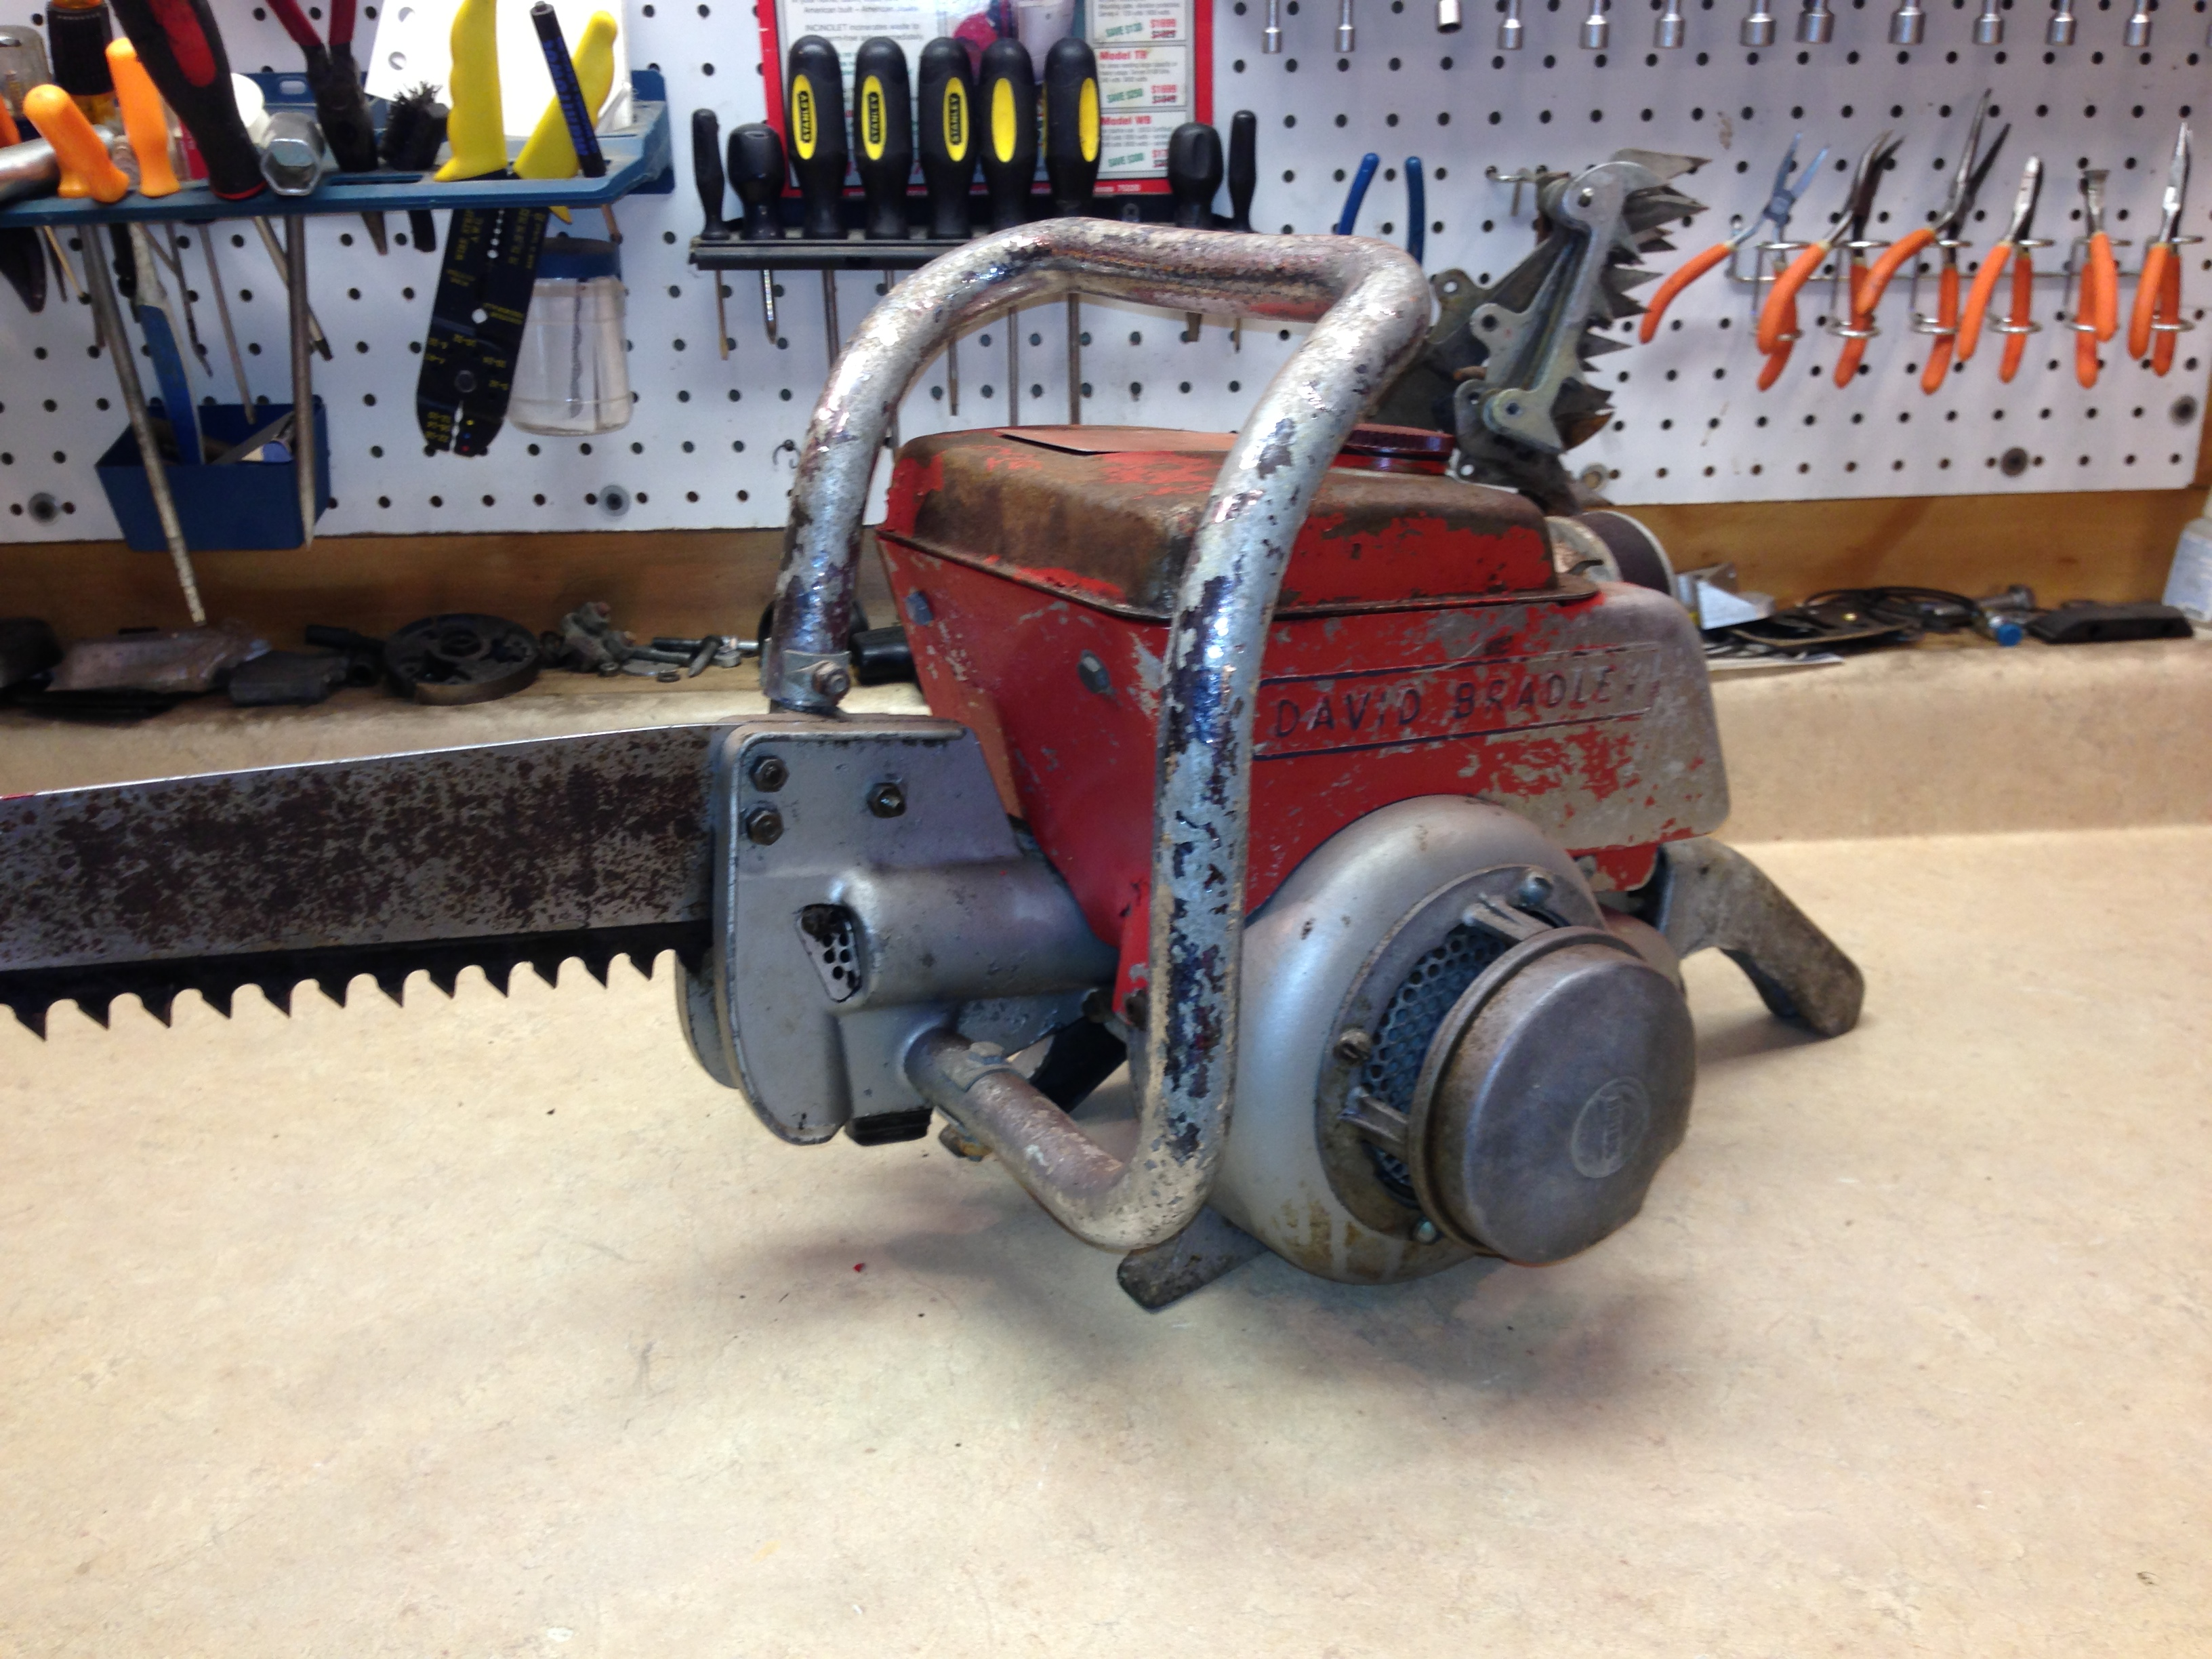 David Bradley reciprocating saw 283.83300  chainsaw (Wright GS-218) #3.JPG